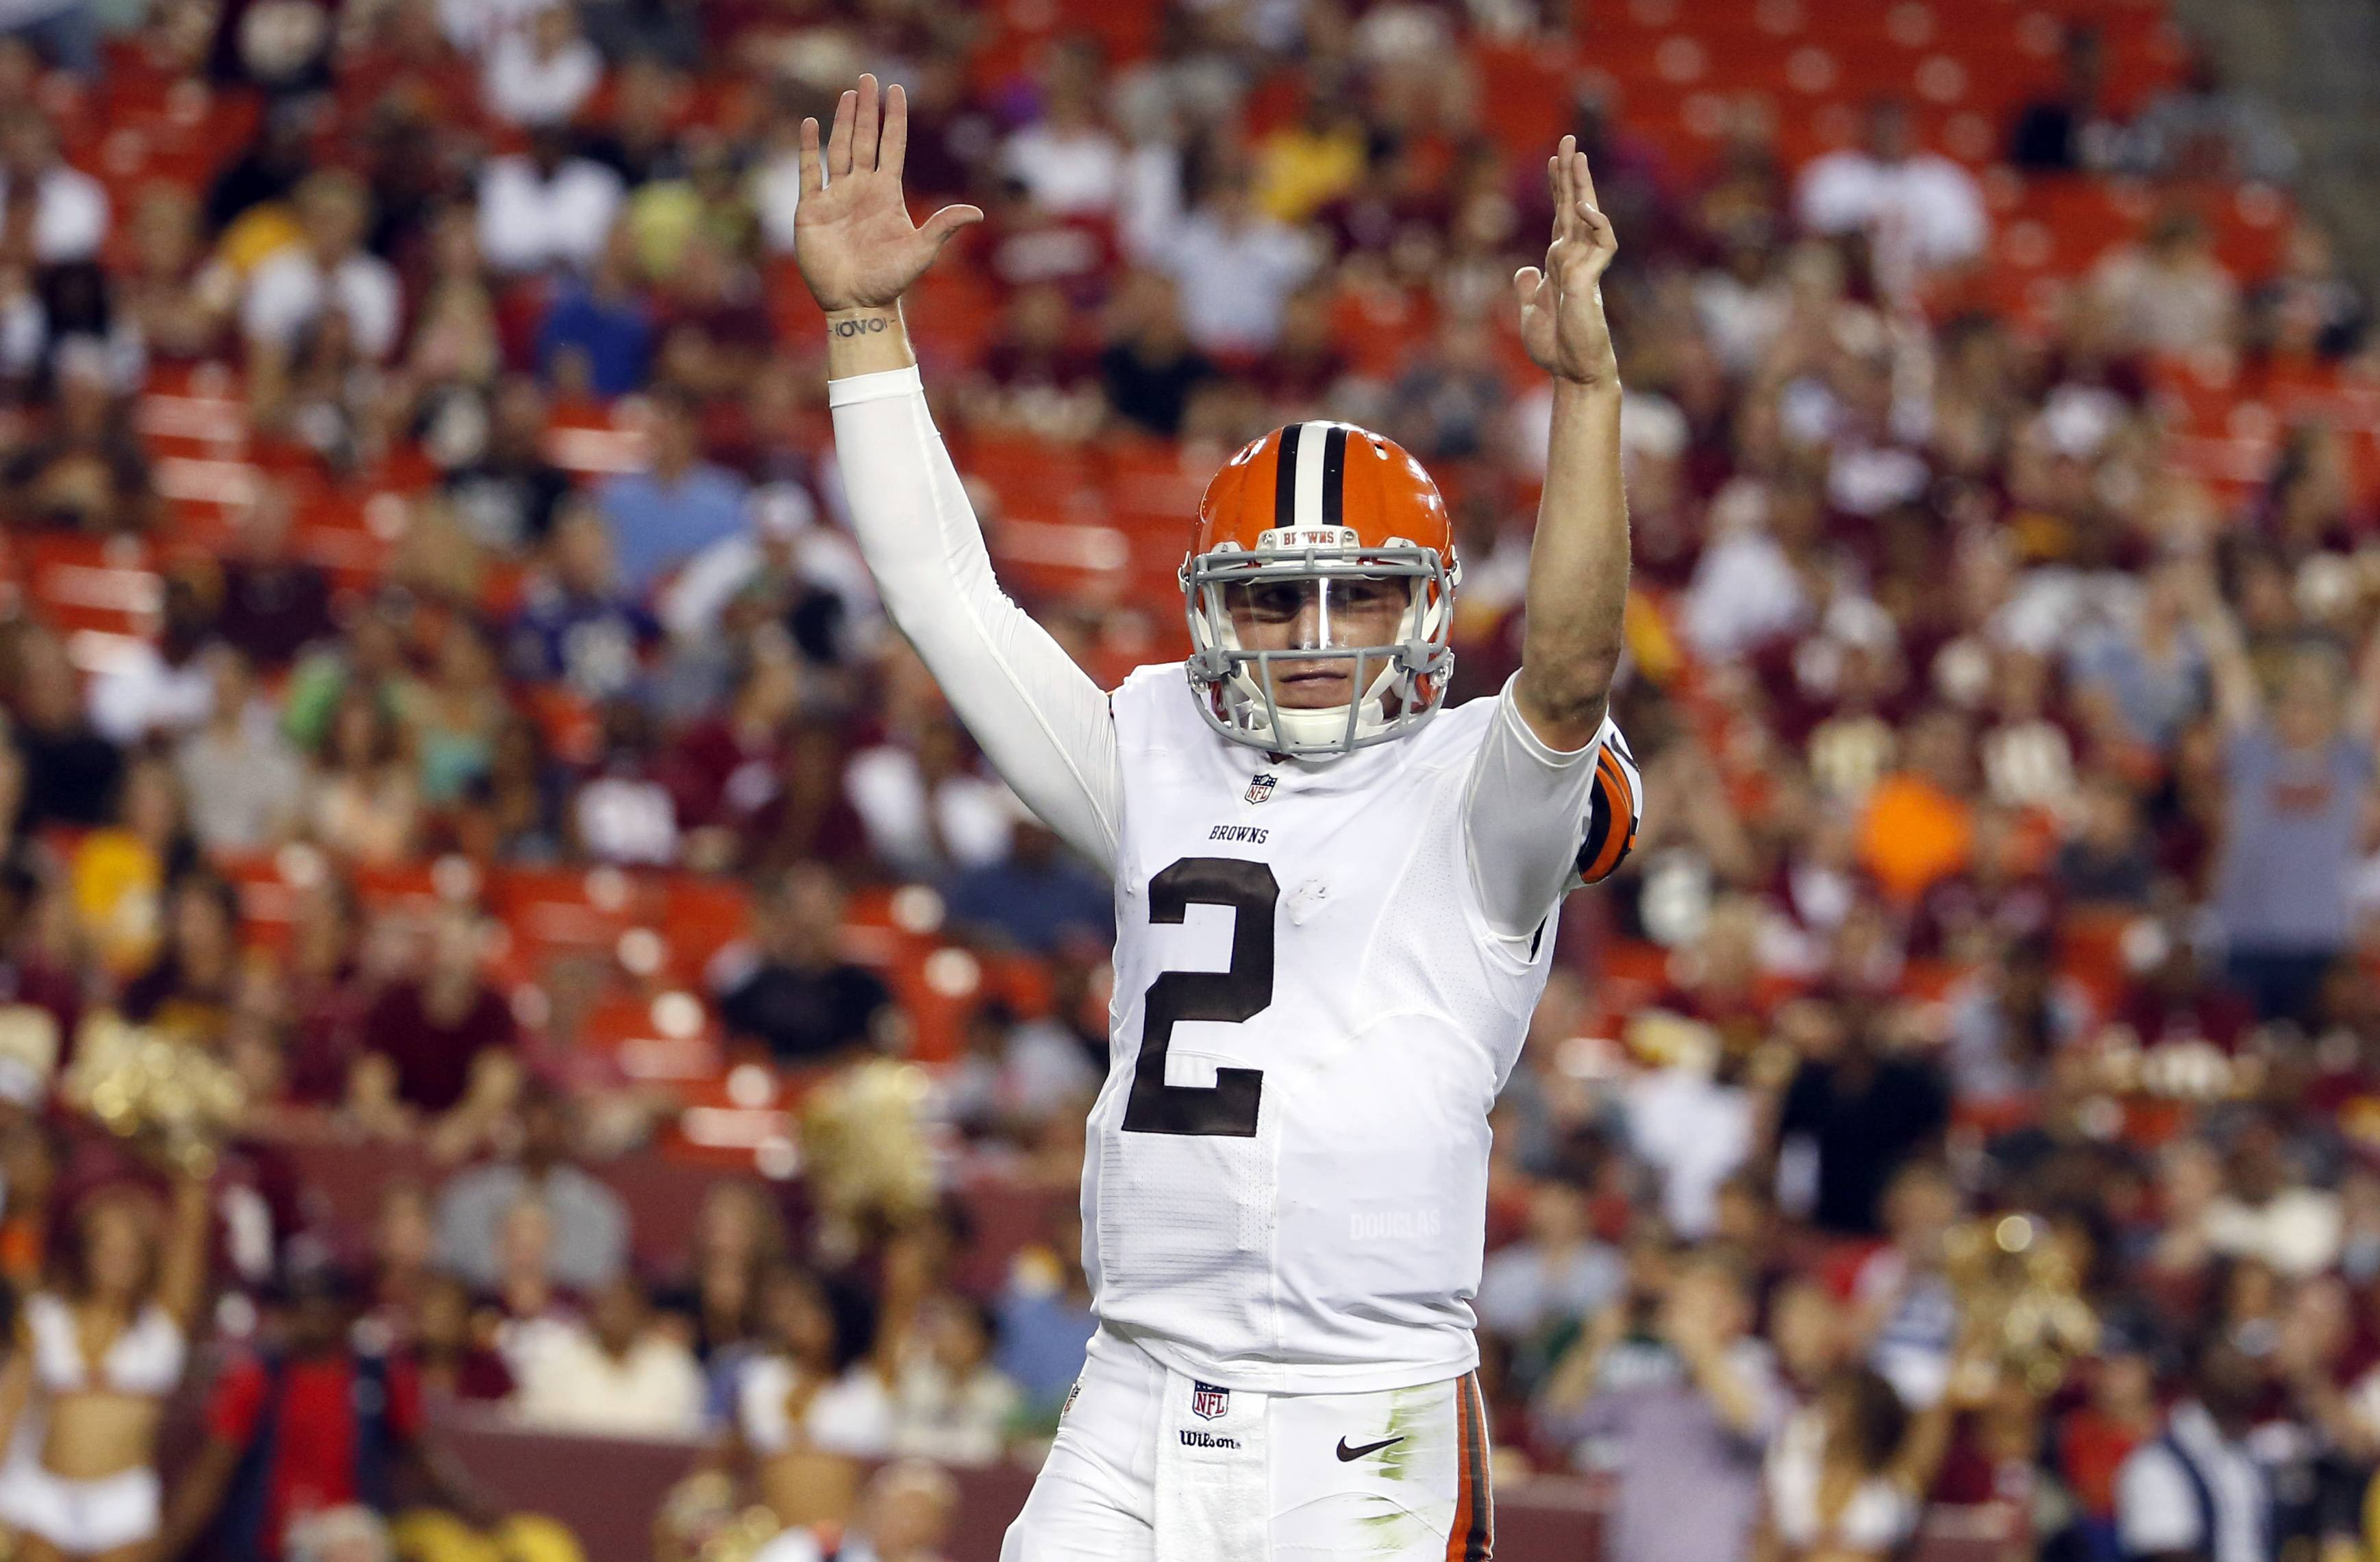 Cleveland Browns quarterback Johnny Manziel (2) celebrates running back Dion Lewis (28) scoring a touchdown on a pass, during the second half of an NFL preseason football game against the Washington Redskins Monday, Aug. 18, 2014, in Landover, Md.